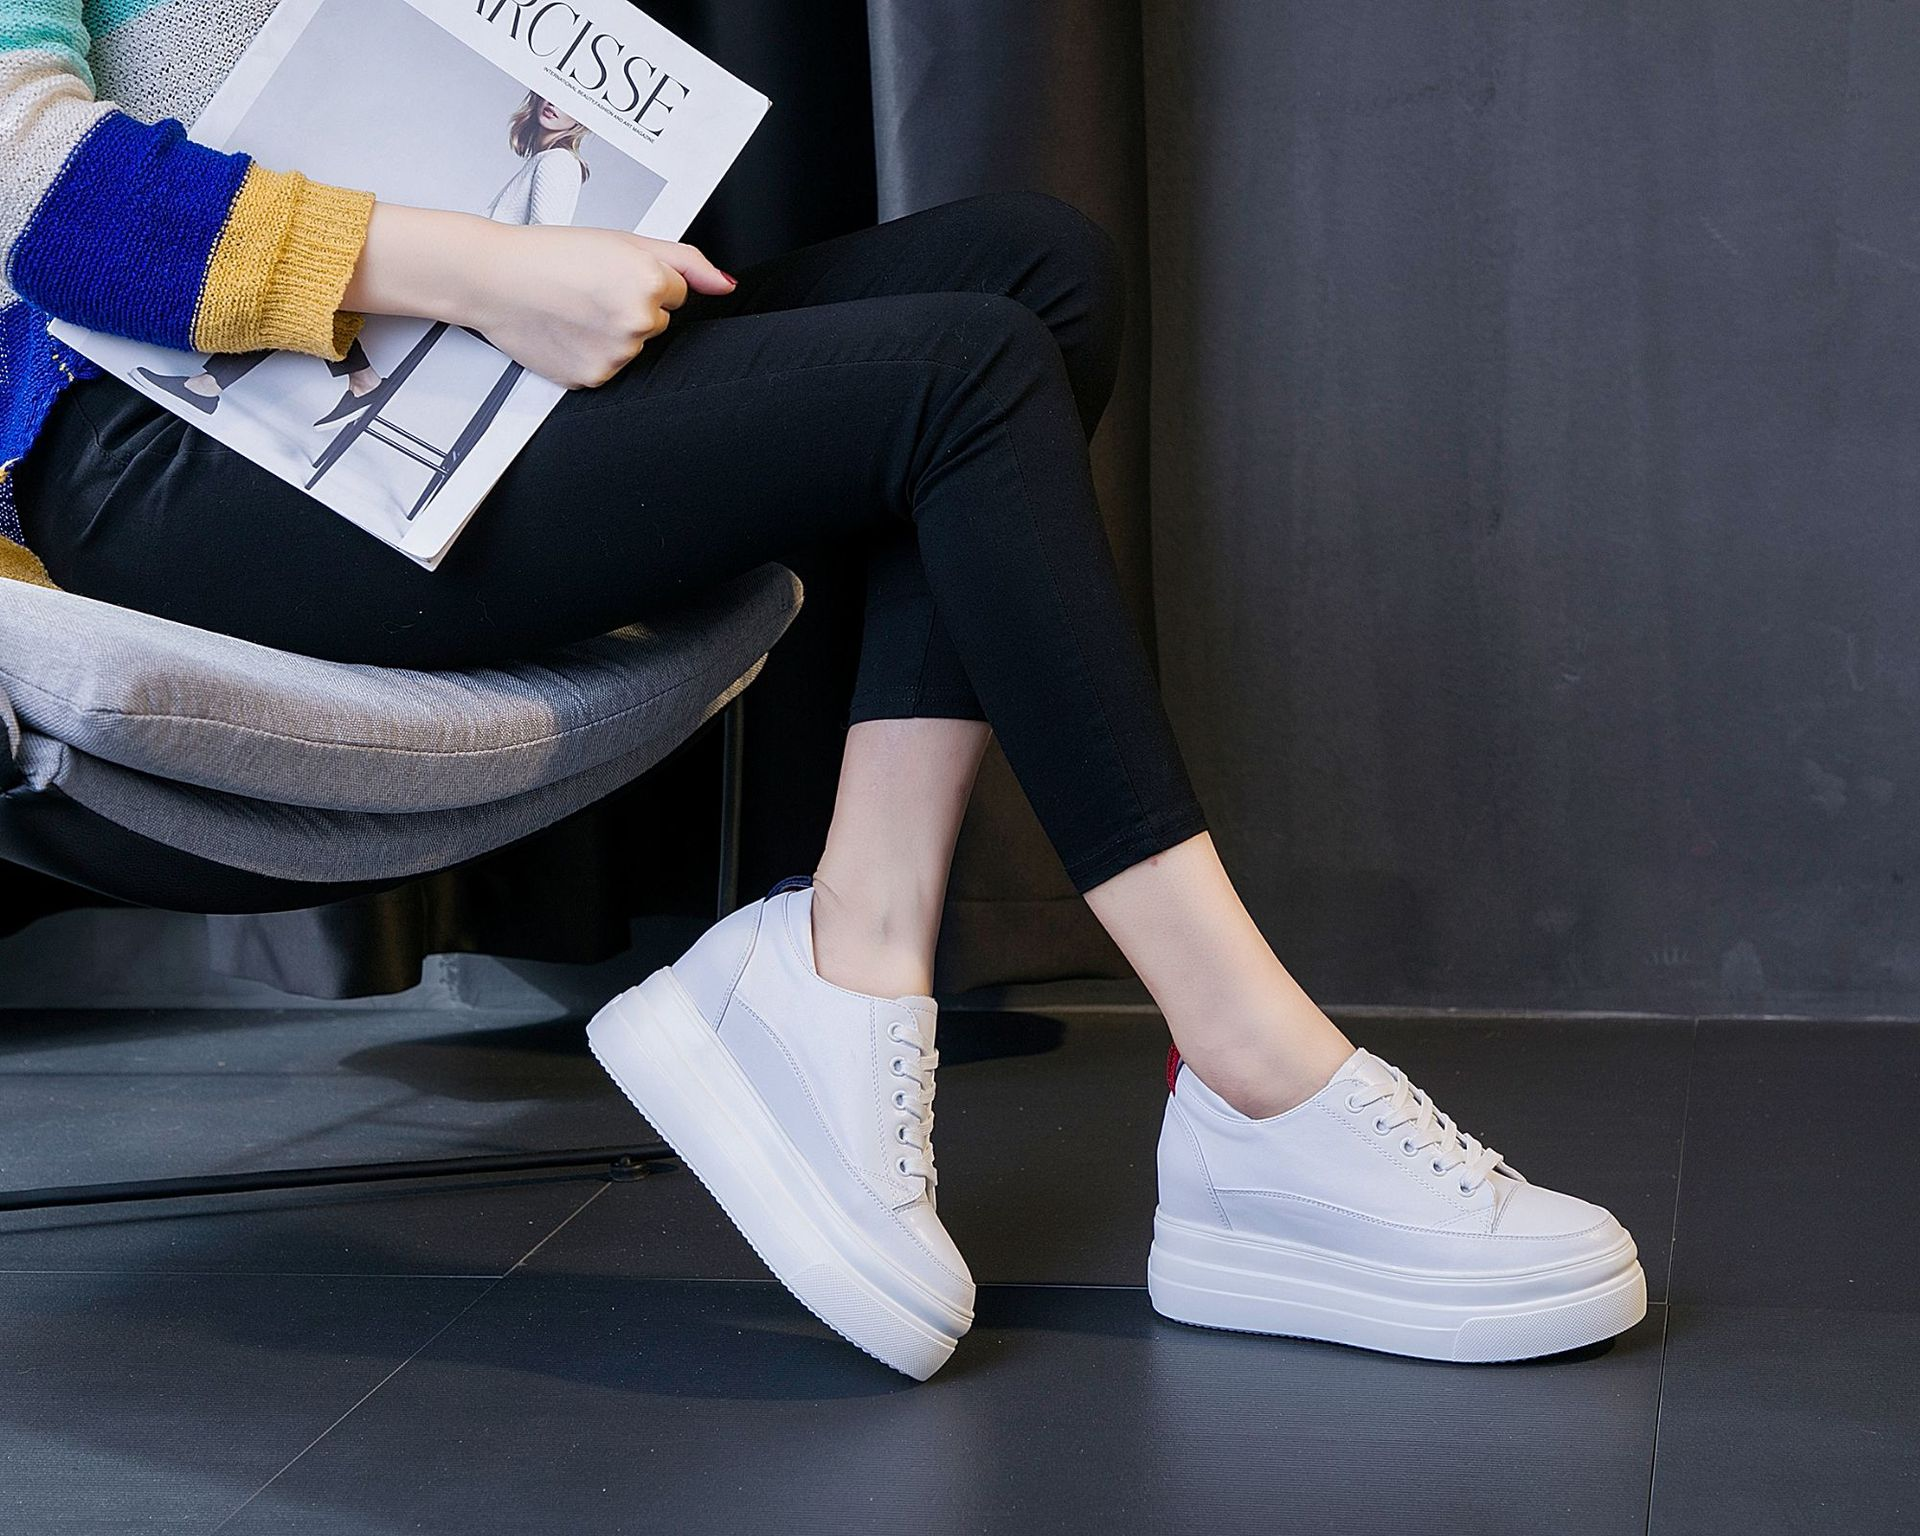 2019 autumn new Korean version of the small white shoes leather increased womens shoes wild casual walking shoes NA428-1-52019 autumn new Korean version of the small white shoes leather increased womens shoes wild casual walking shoes NA428-1-5